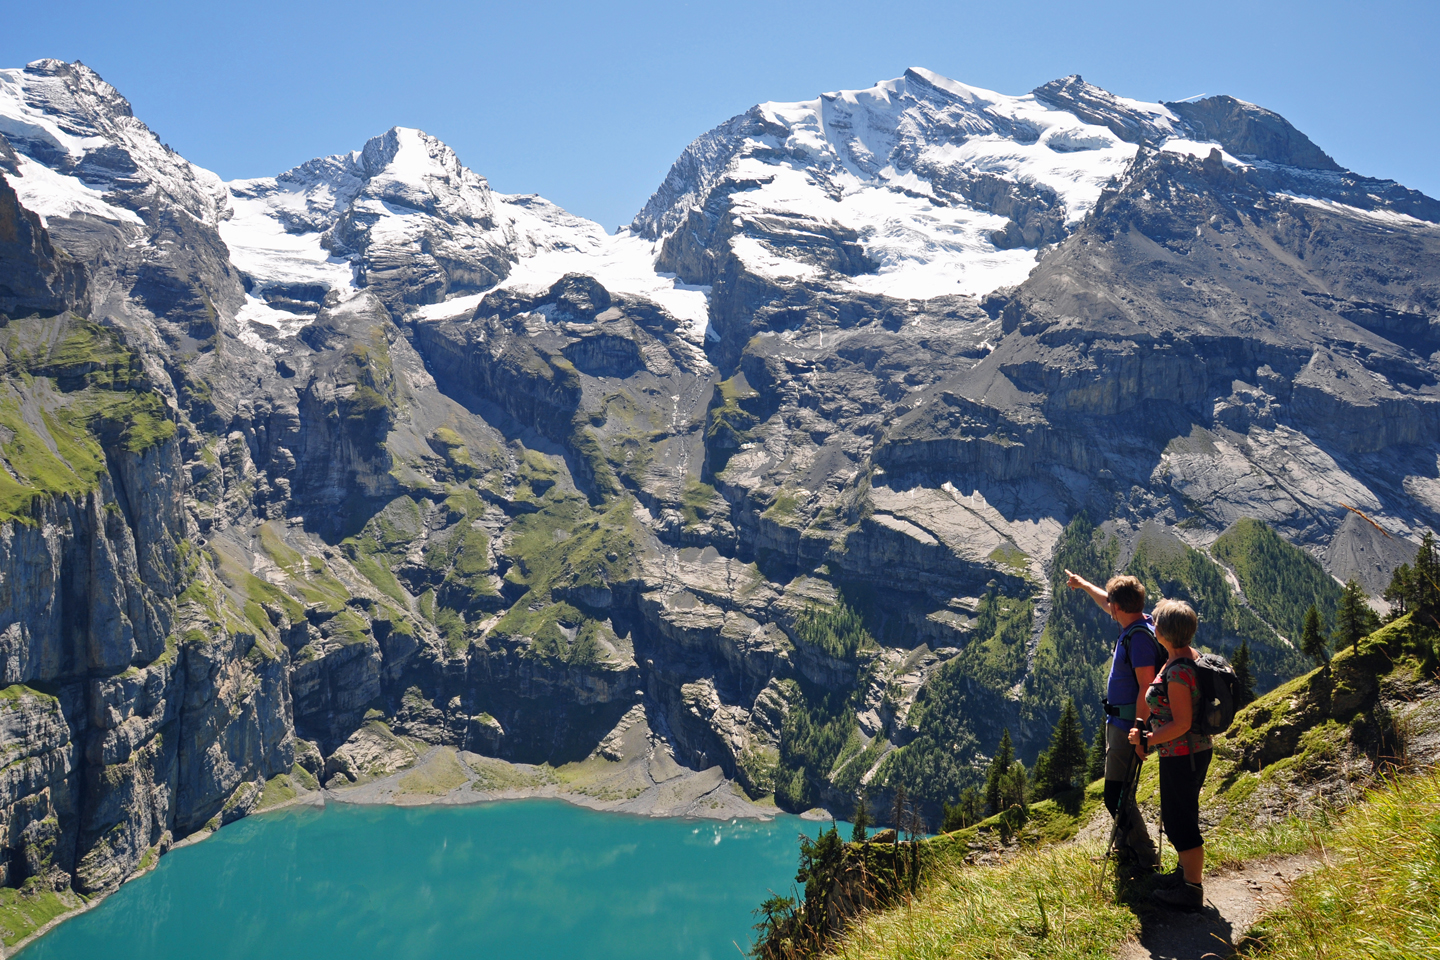 Enjoying the view over Lake Oeschinen near Kandersteg